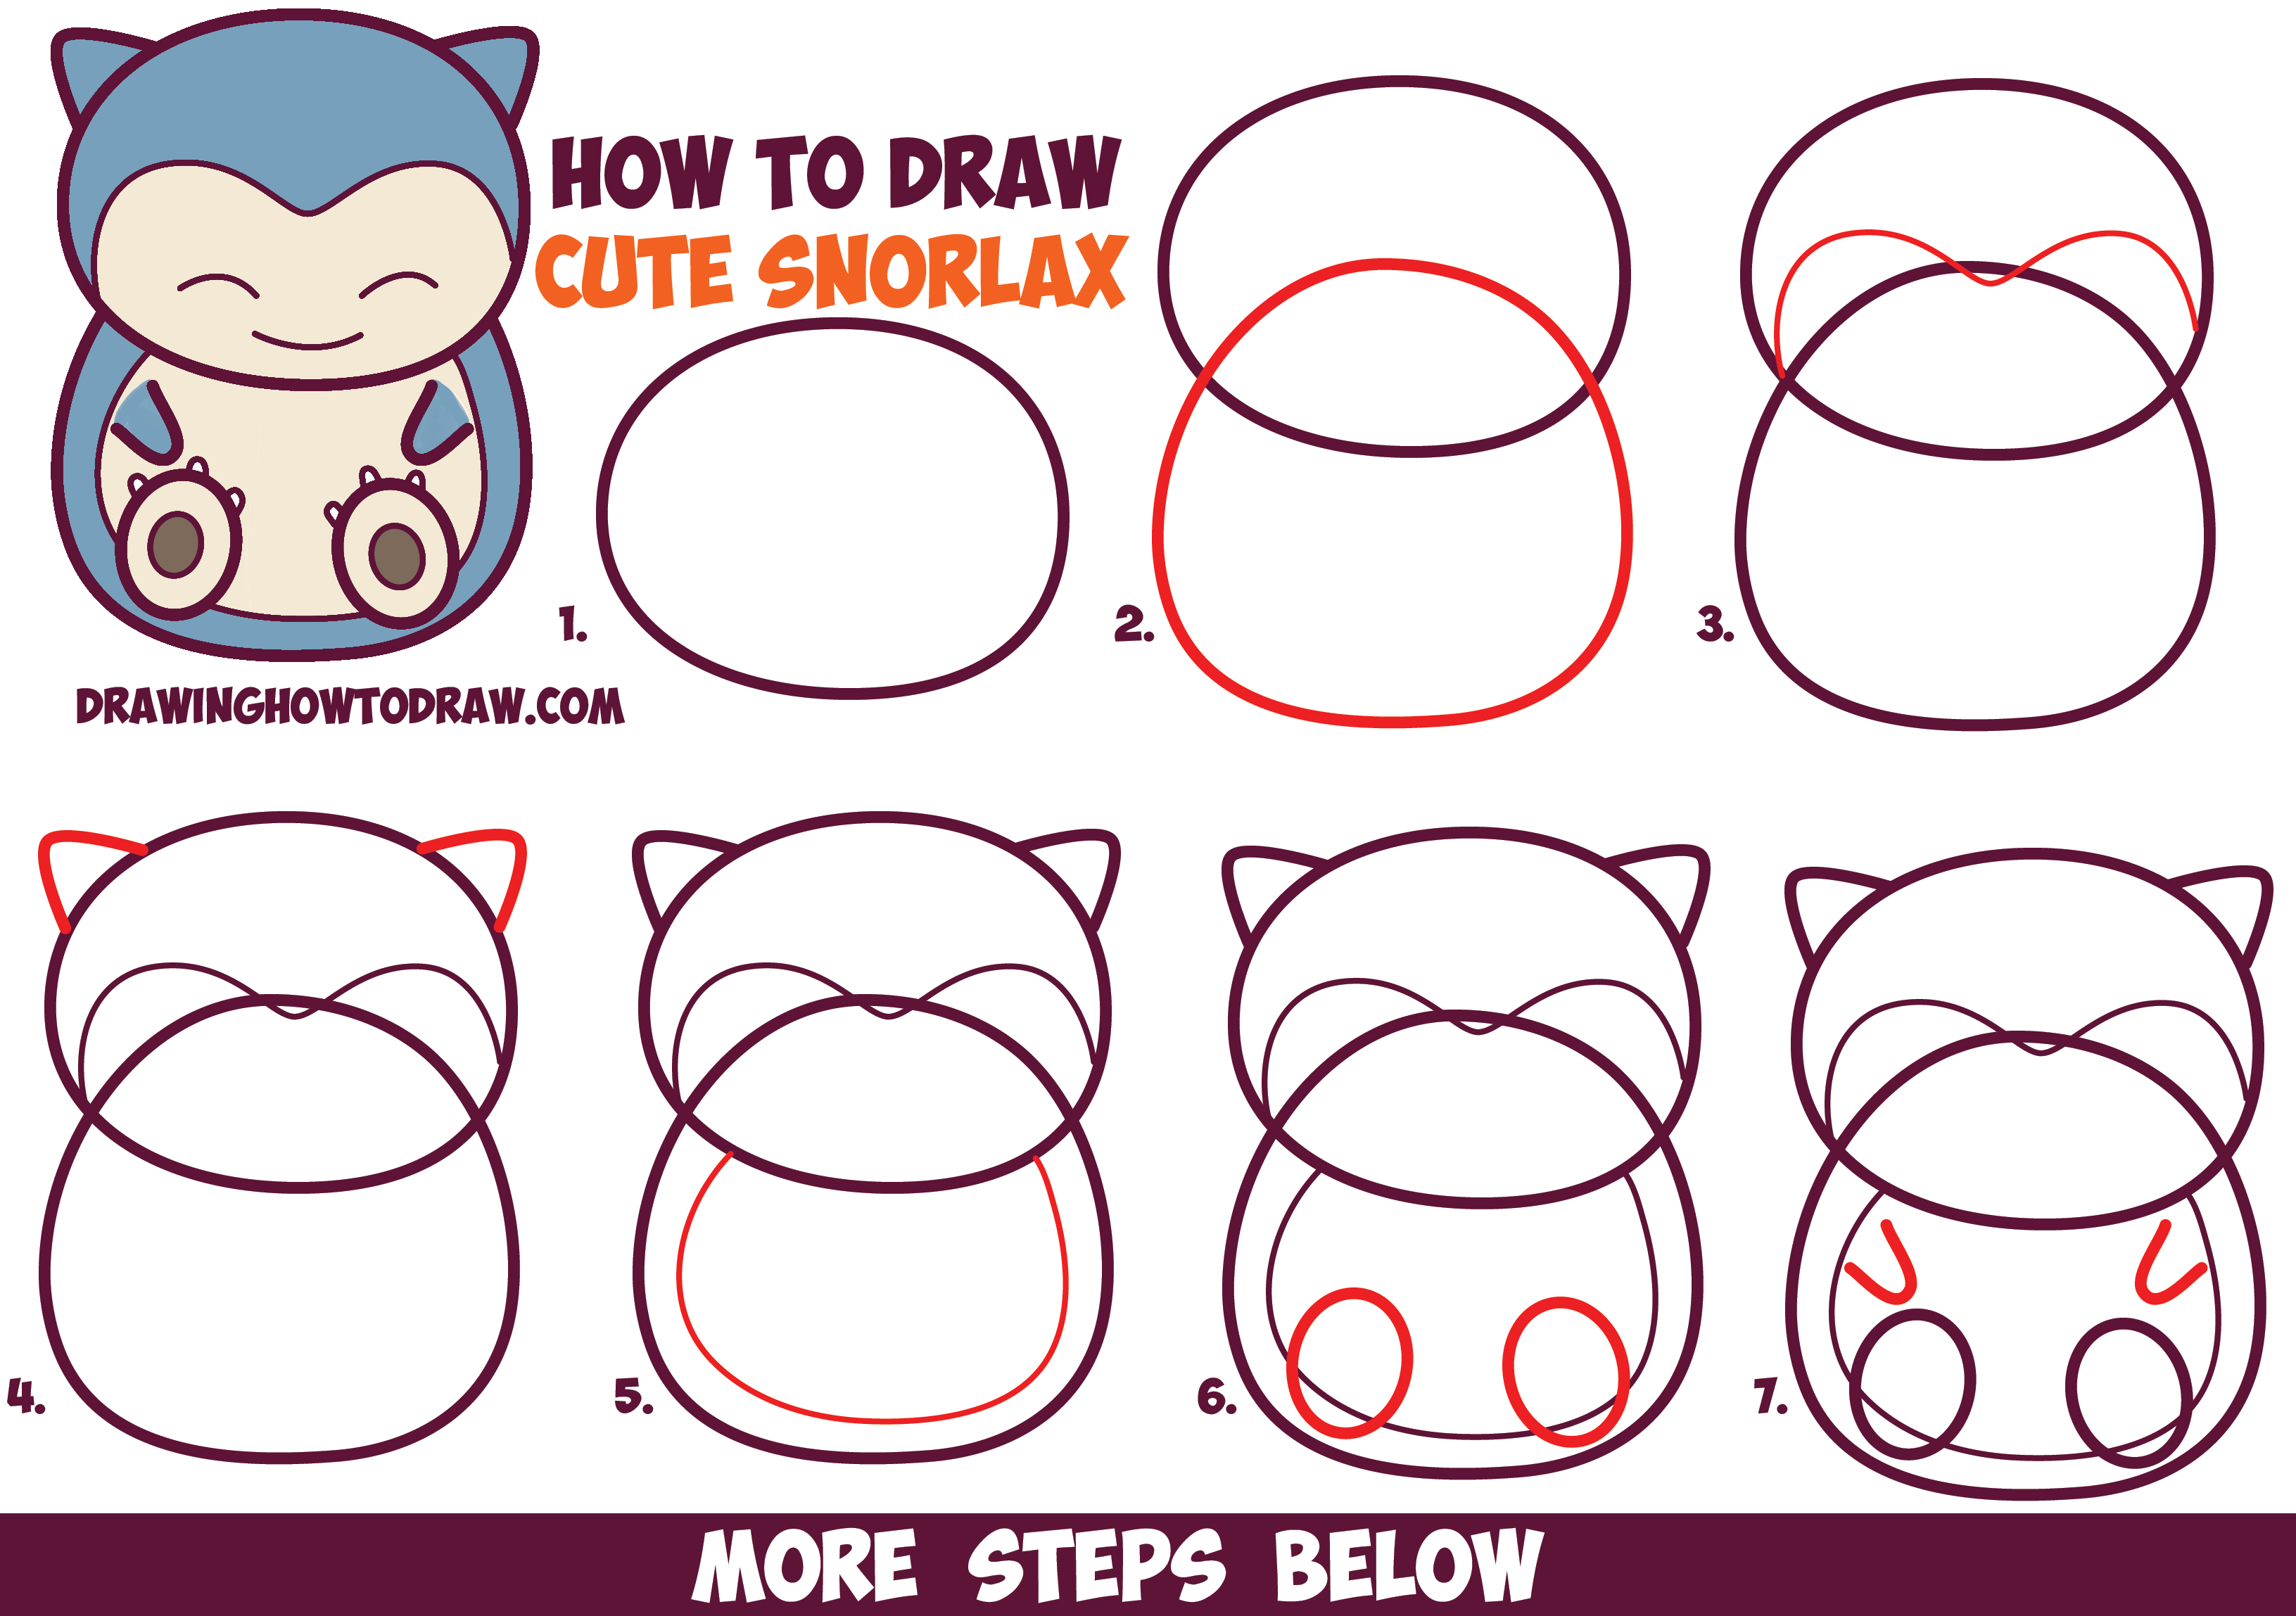 How to Draw Cute Snorlax (Chibi / Kawaii) from Pokemon in Easy Step by Step Drawing Tutorial for Kids